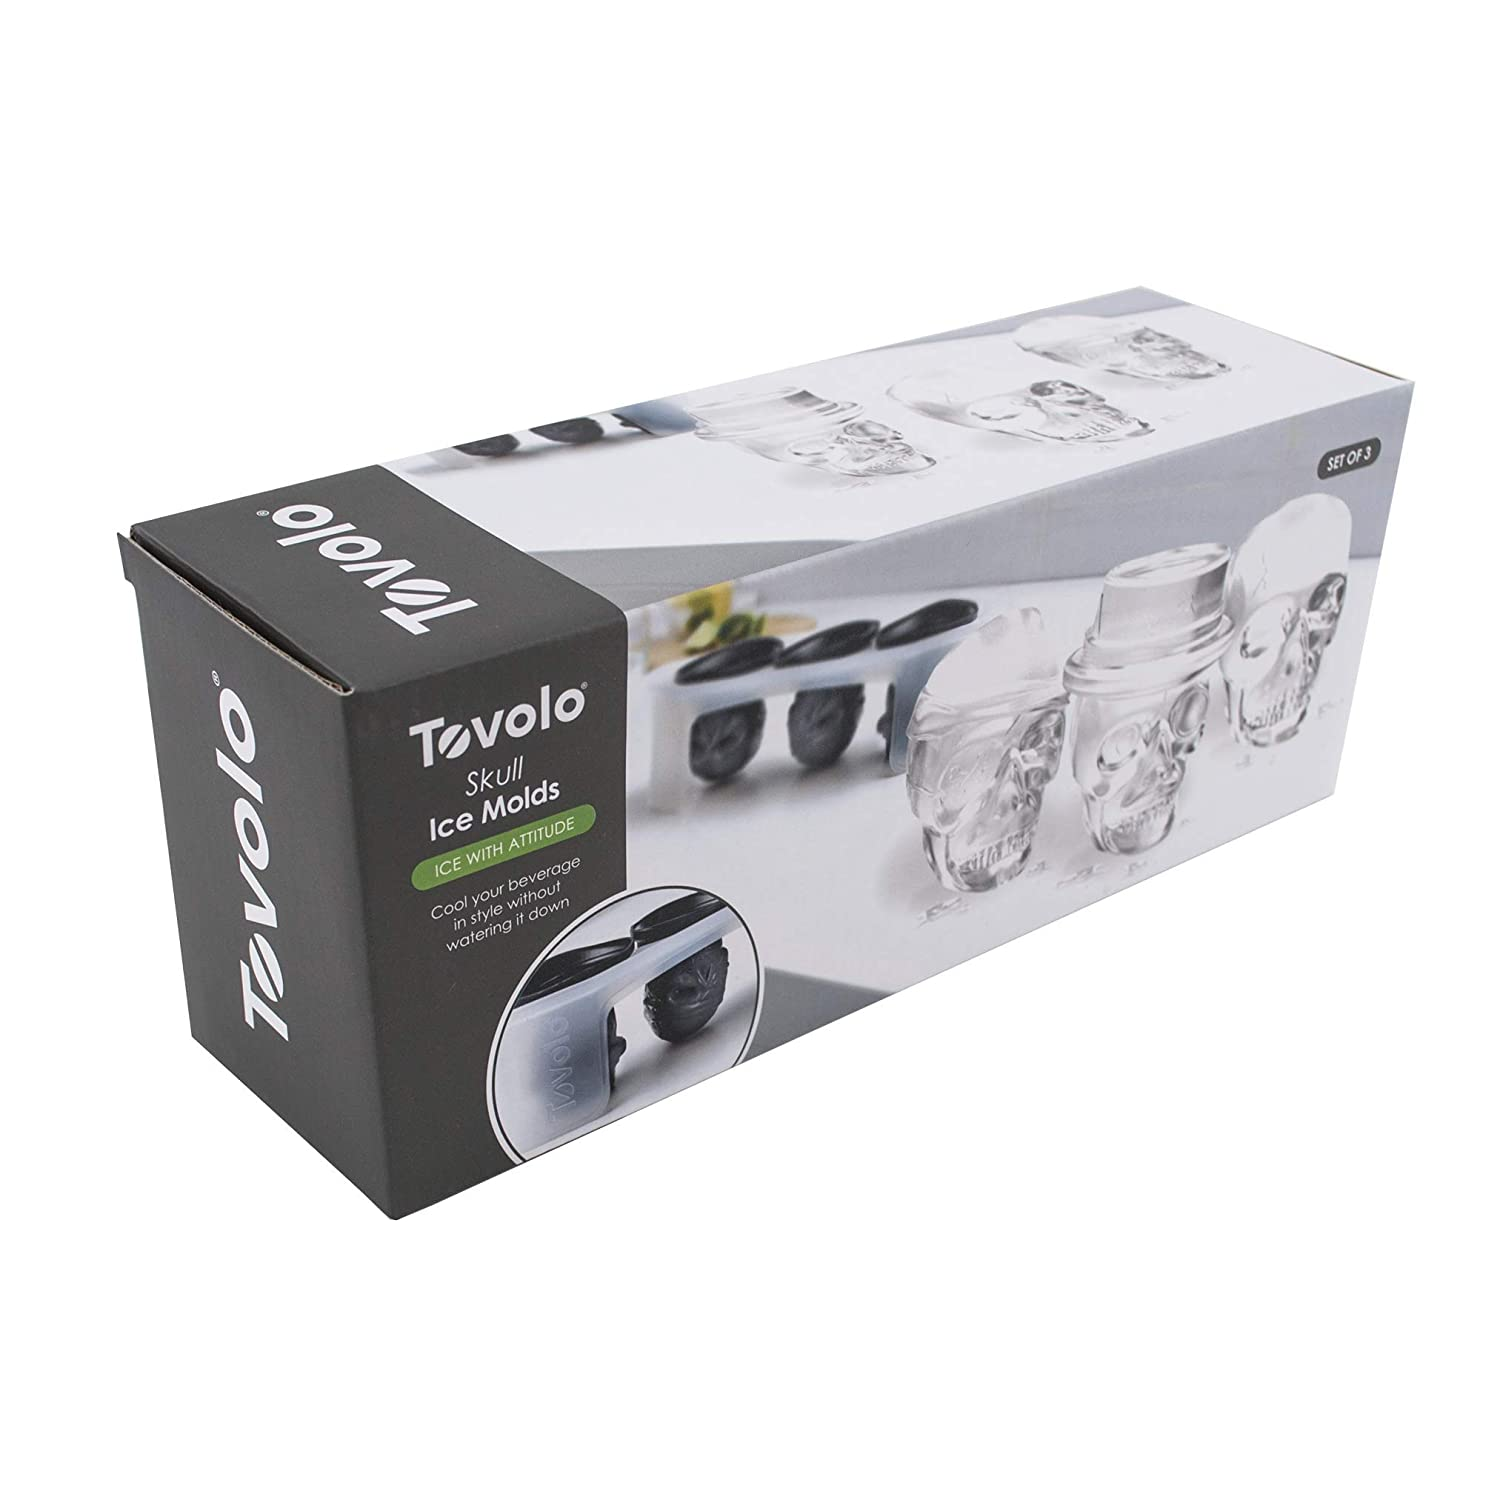 Tovolo Colossal Cube Ice Moulds Set of 2 Ice Cube Makers